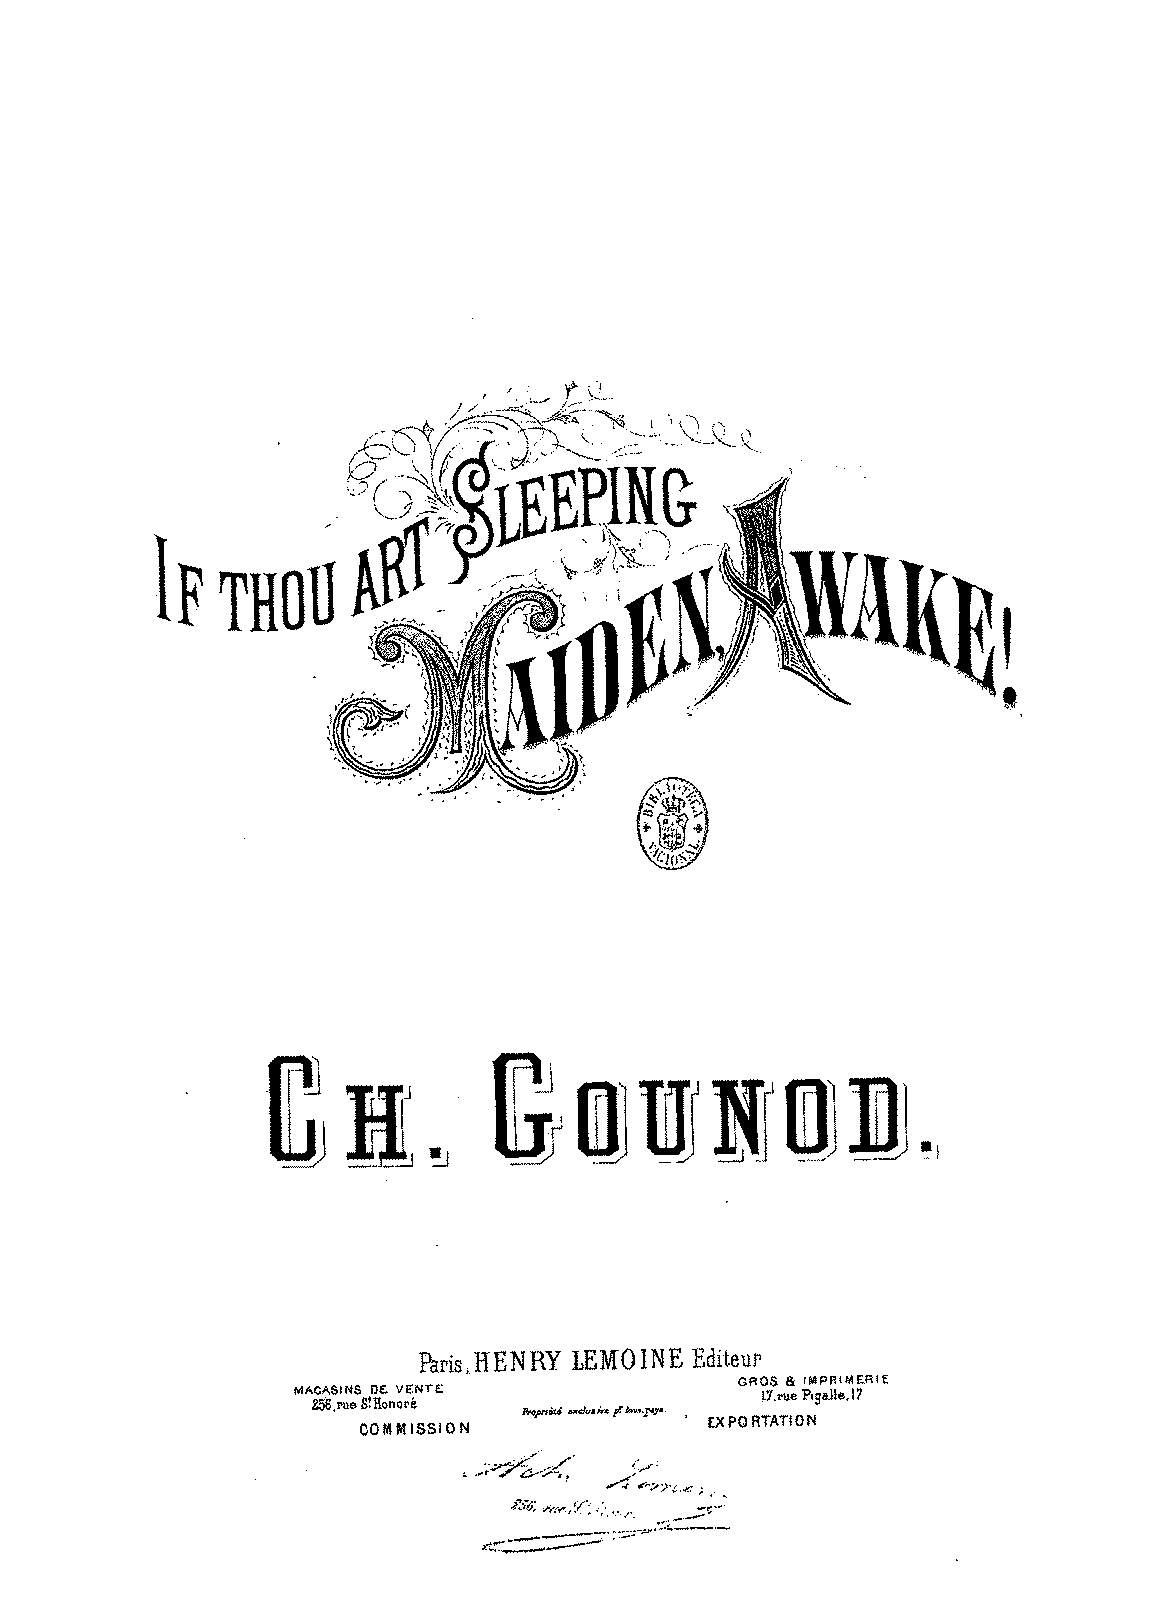 PMLP419344-Gounod - If Thou Art Sleeping VPf.pdf